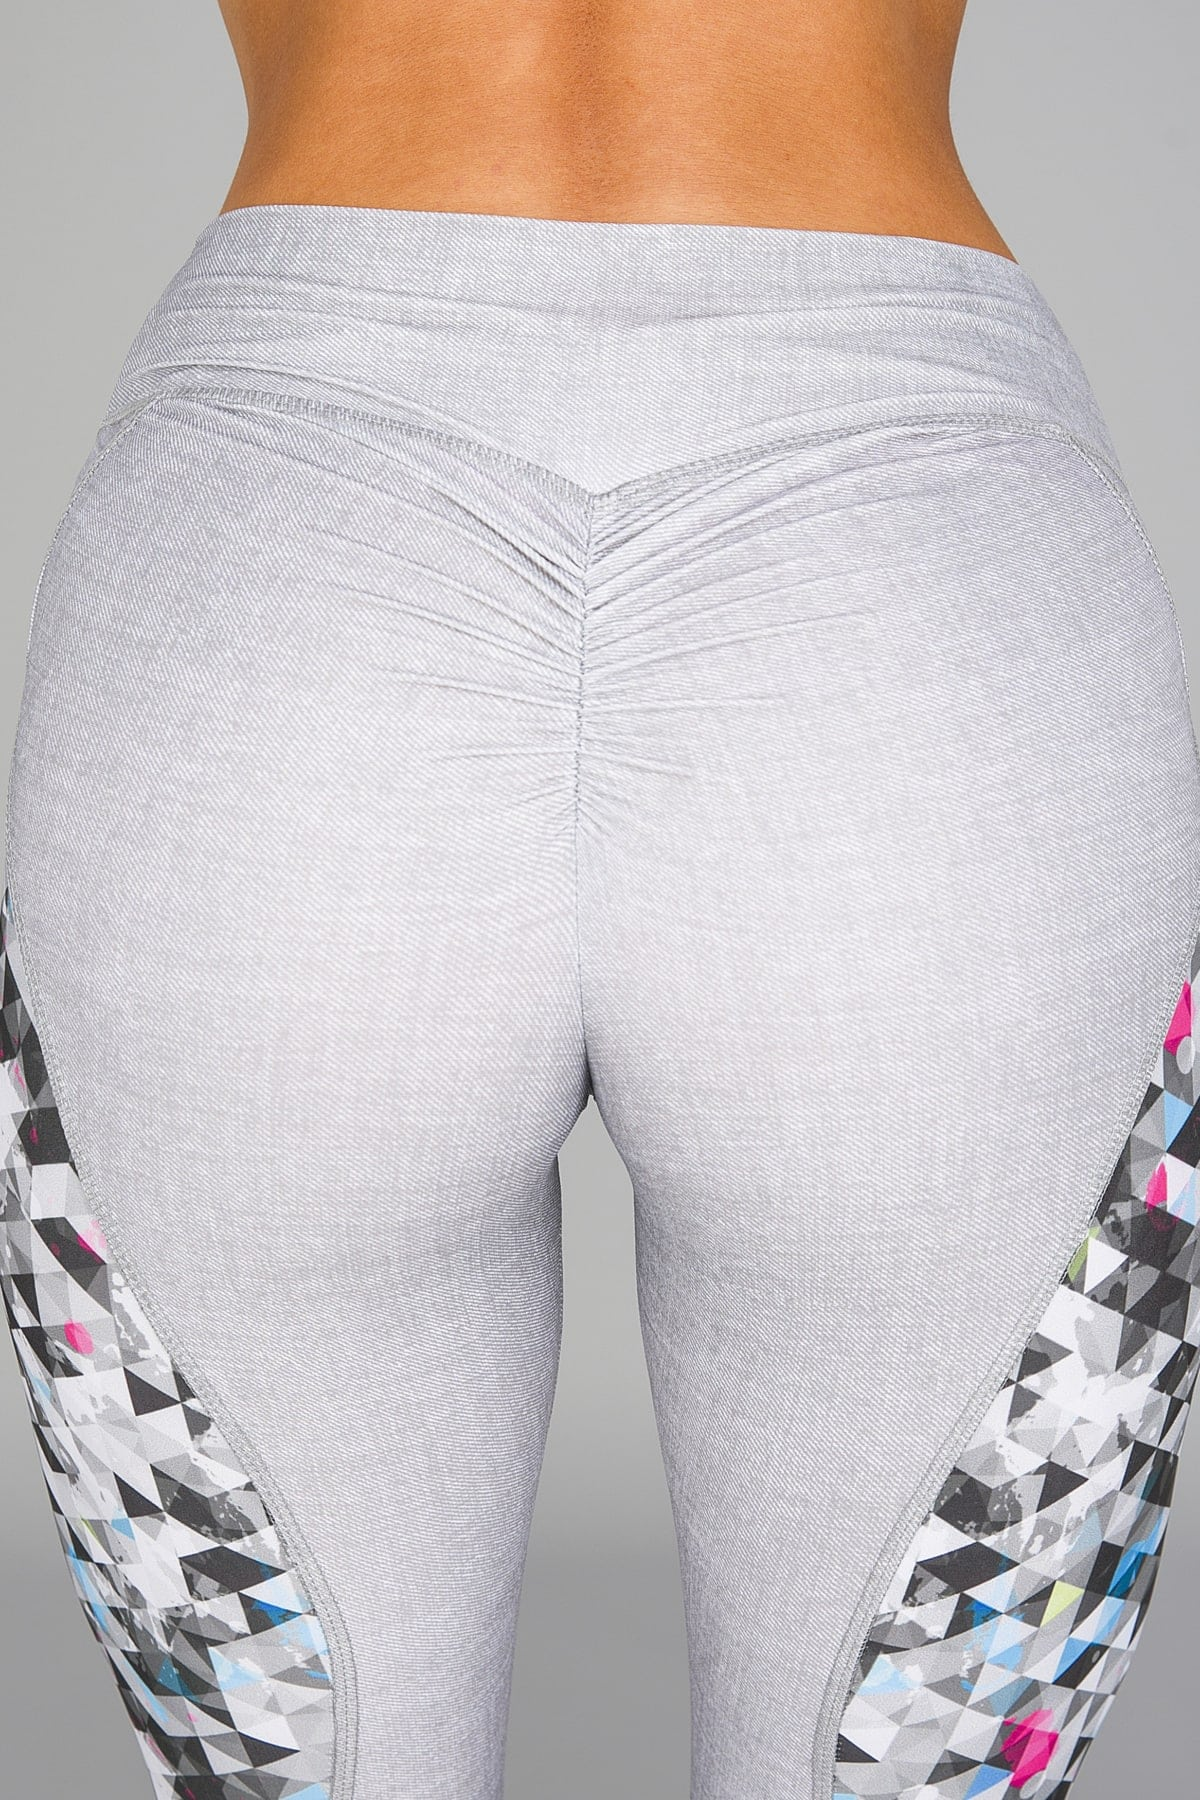 ABS2B Fitness Zero Flaw High Rise Leggings – Silver13